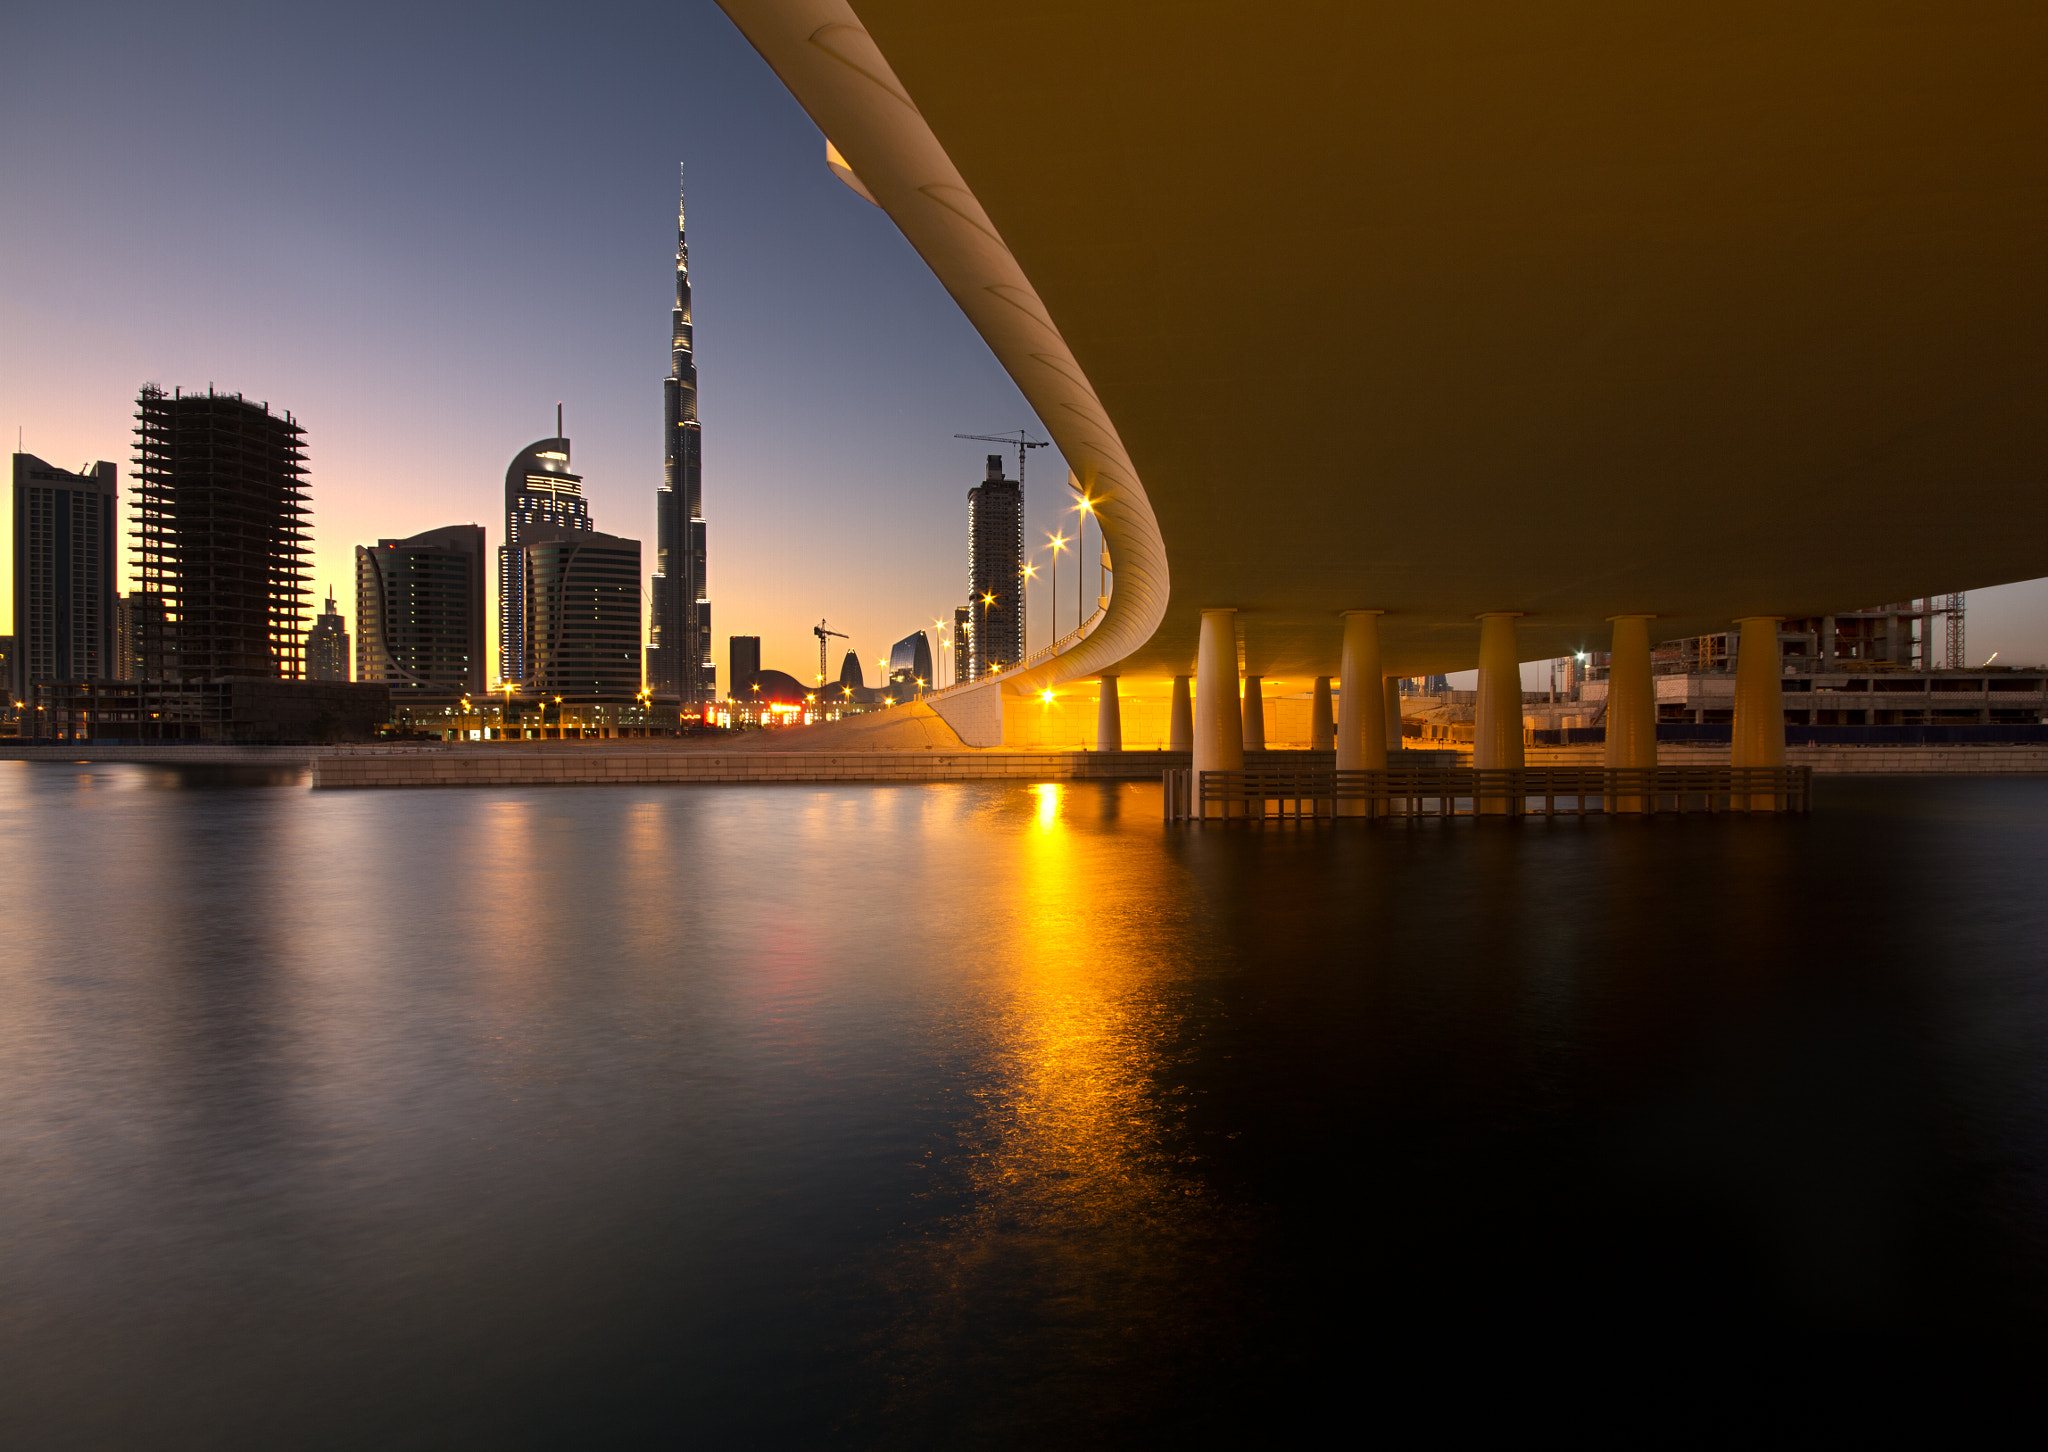 Photograph Burj Khalifia by Martin Currie on 500px